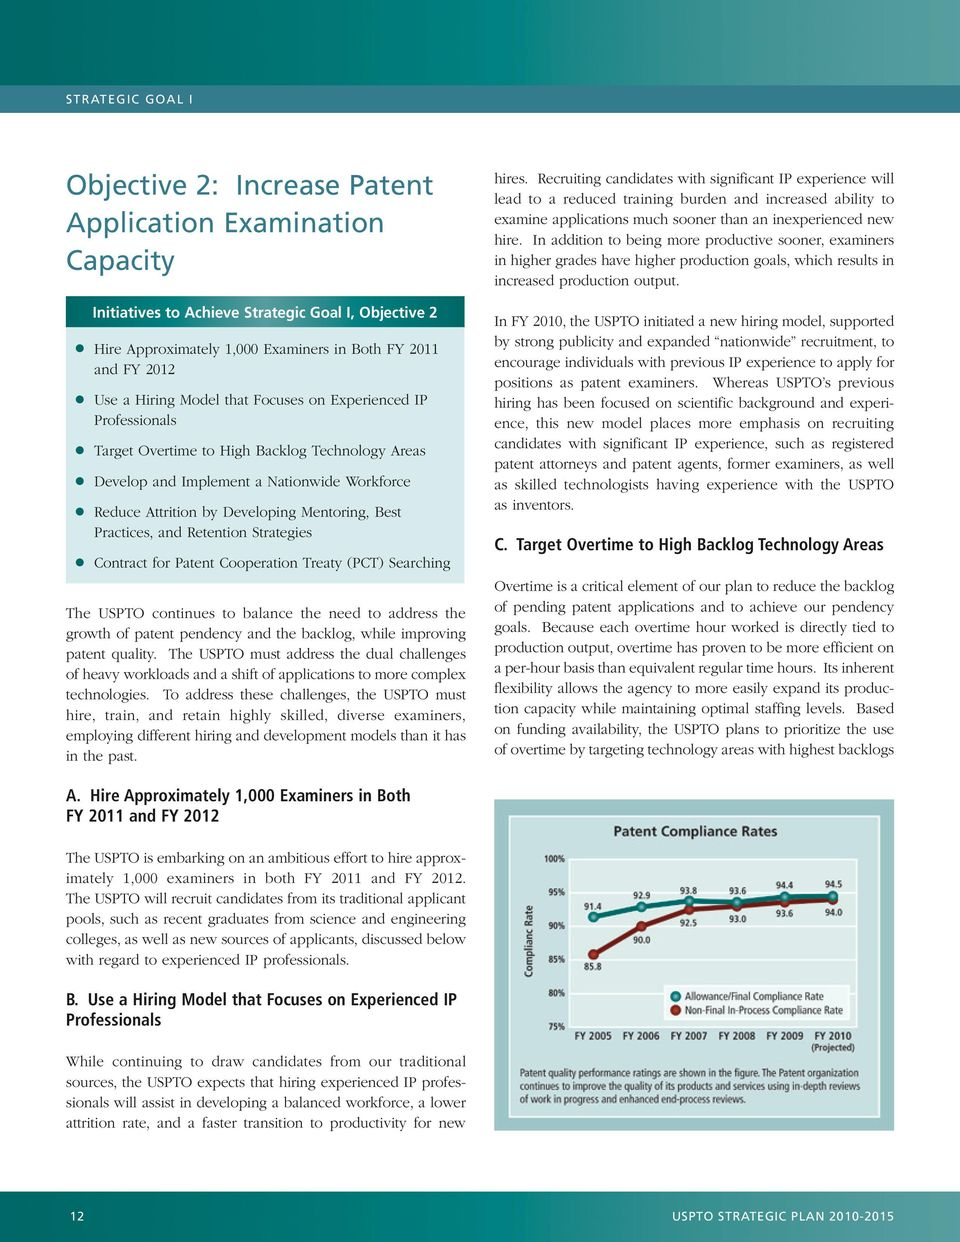 Best Practices, and Retention Strategies Contract for Patent Cooperation Treaty (PCT) Searching The USPTO continues to balance the need to address the growth of patent pendency and the backlog, while